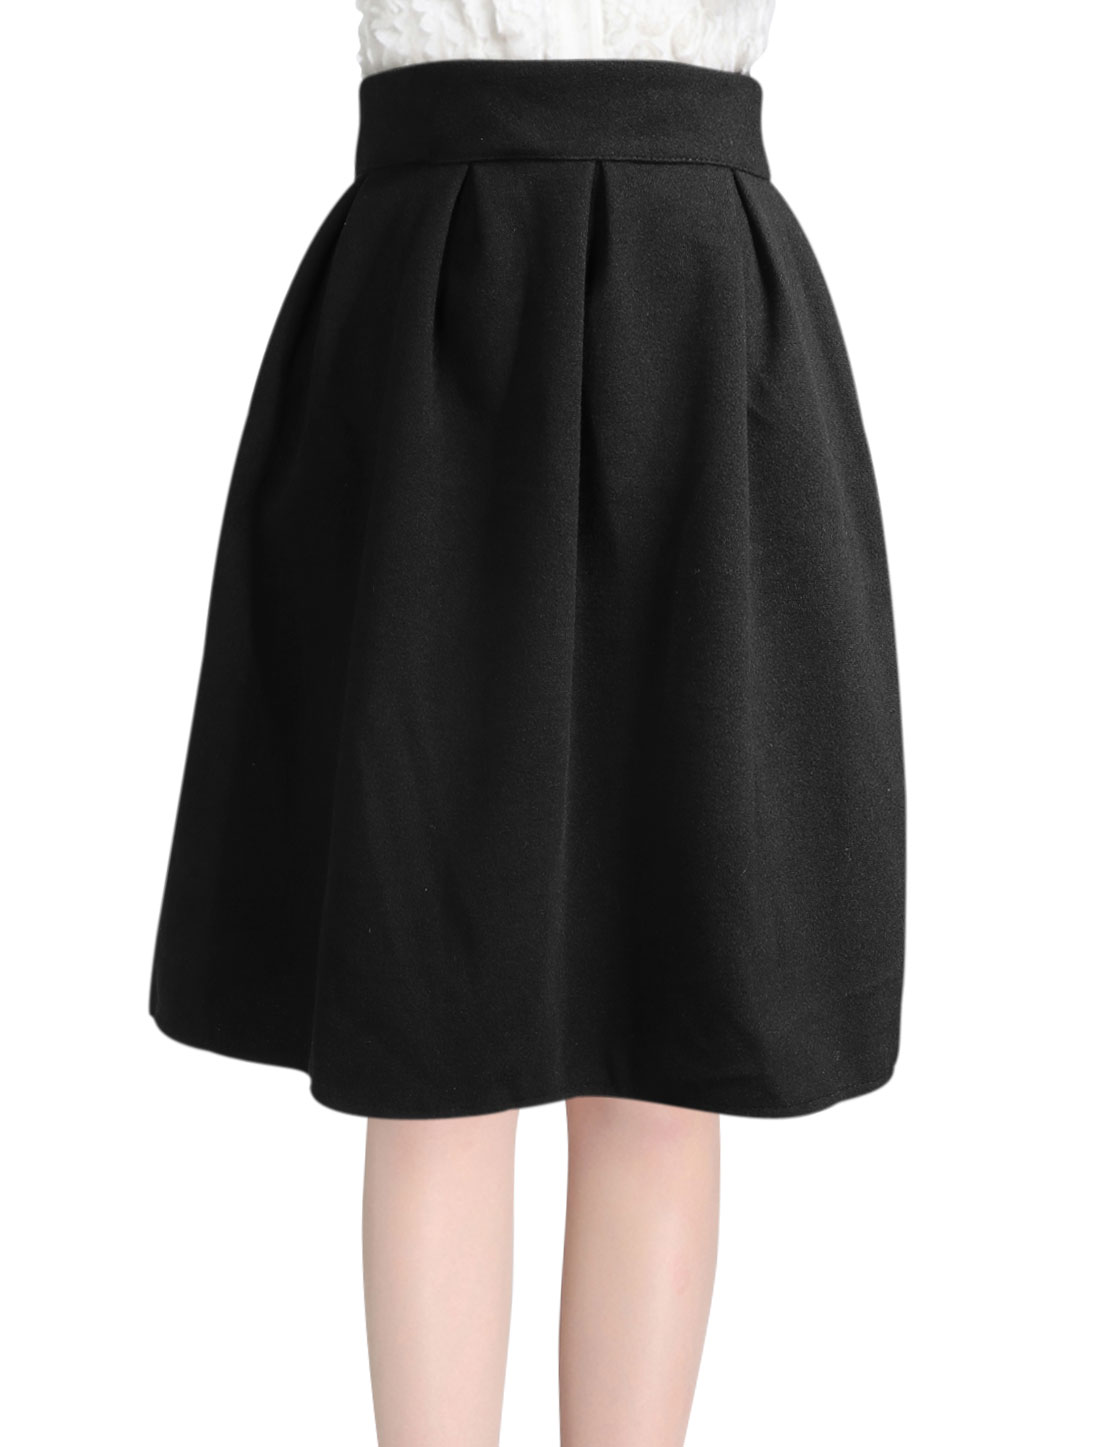 High Waist Half Lined Casual Worsted Full Skirt for Women Black M